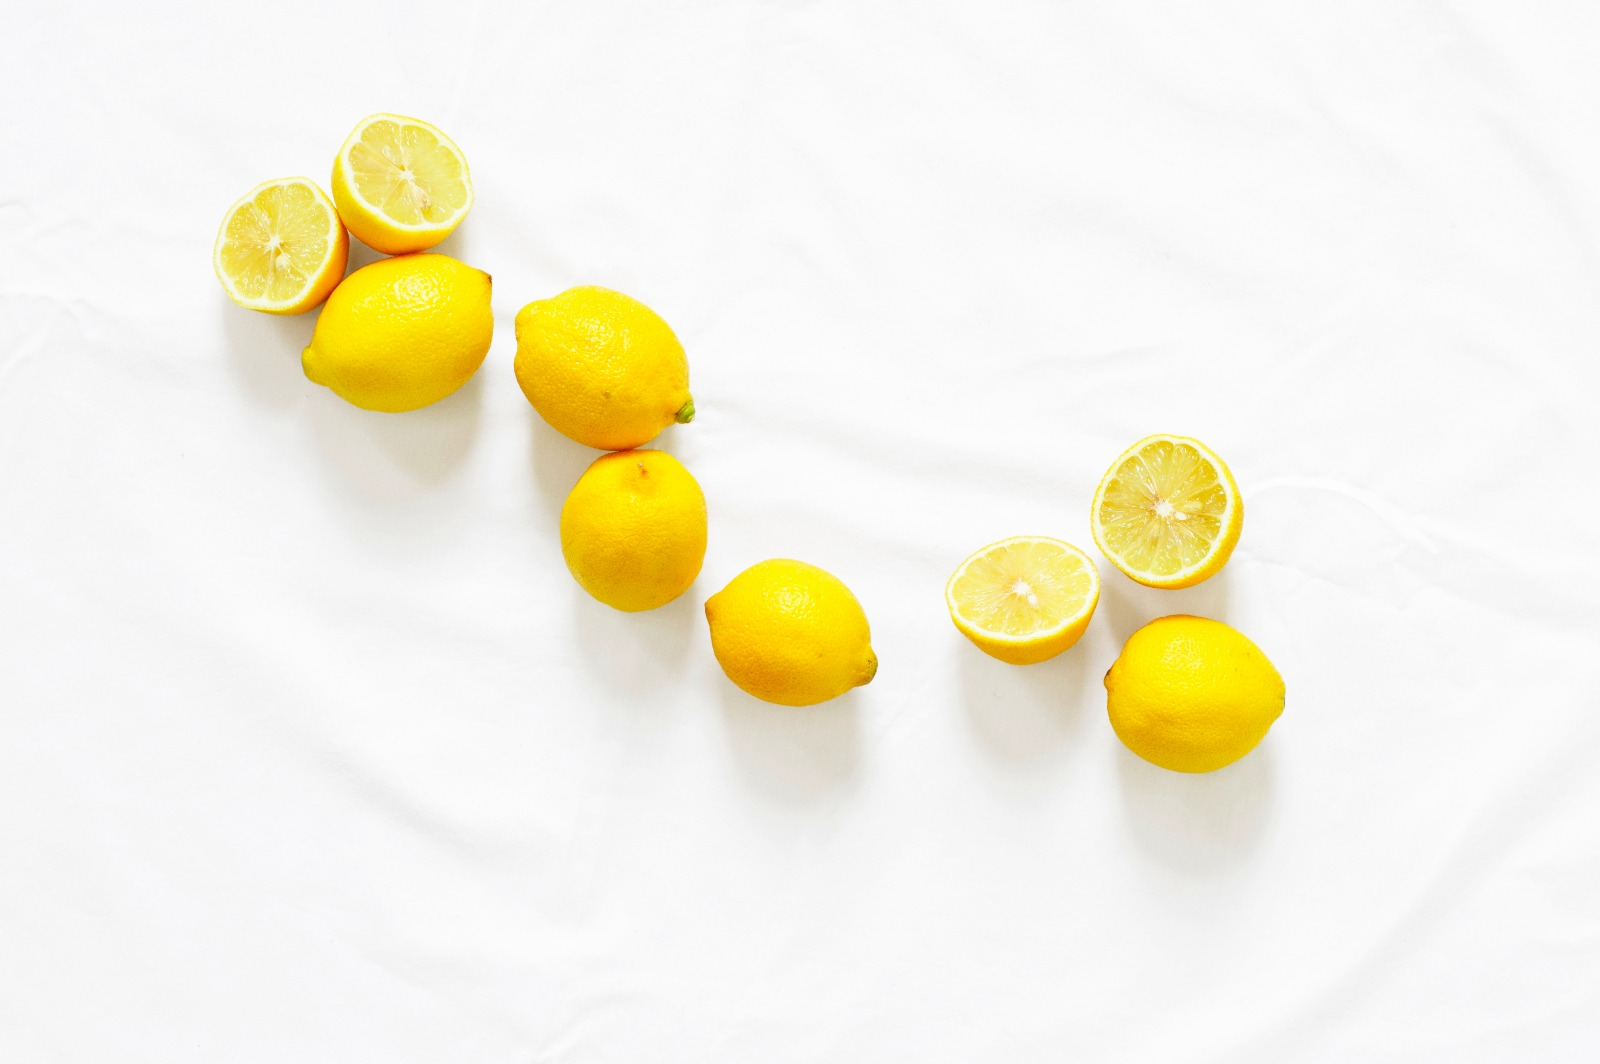 WATER AND LEMON: DETOX MADE EASY